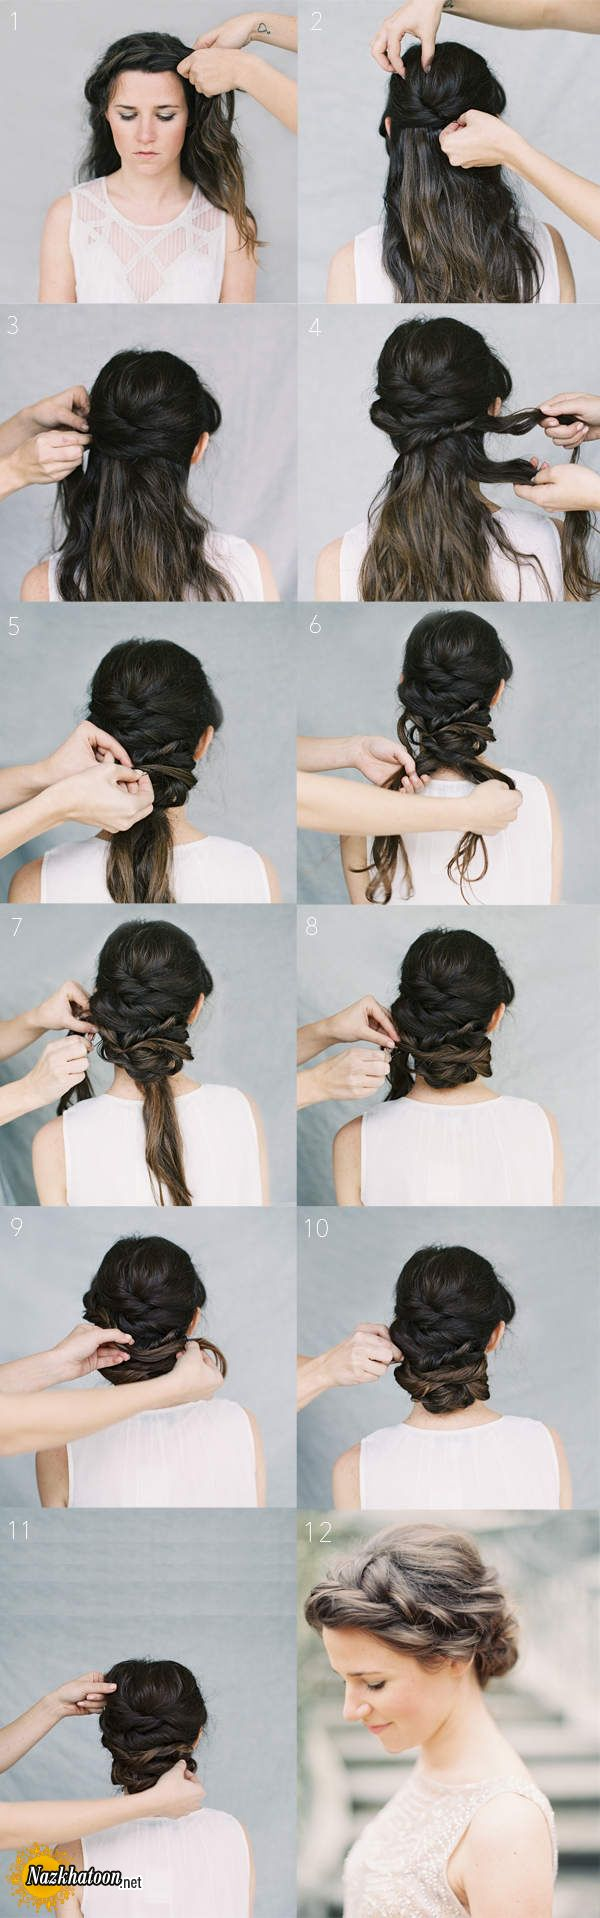 Outstanding How To Crown Braid Hairstyle For Long Medium Short Hair Tutorial Hairstyle Inspiration Daily Dogsangcom